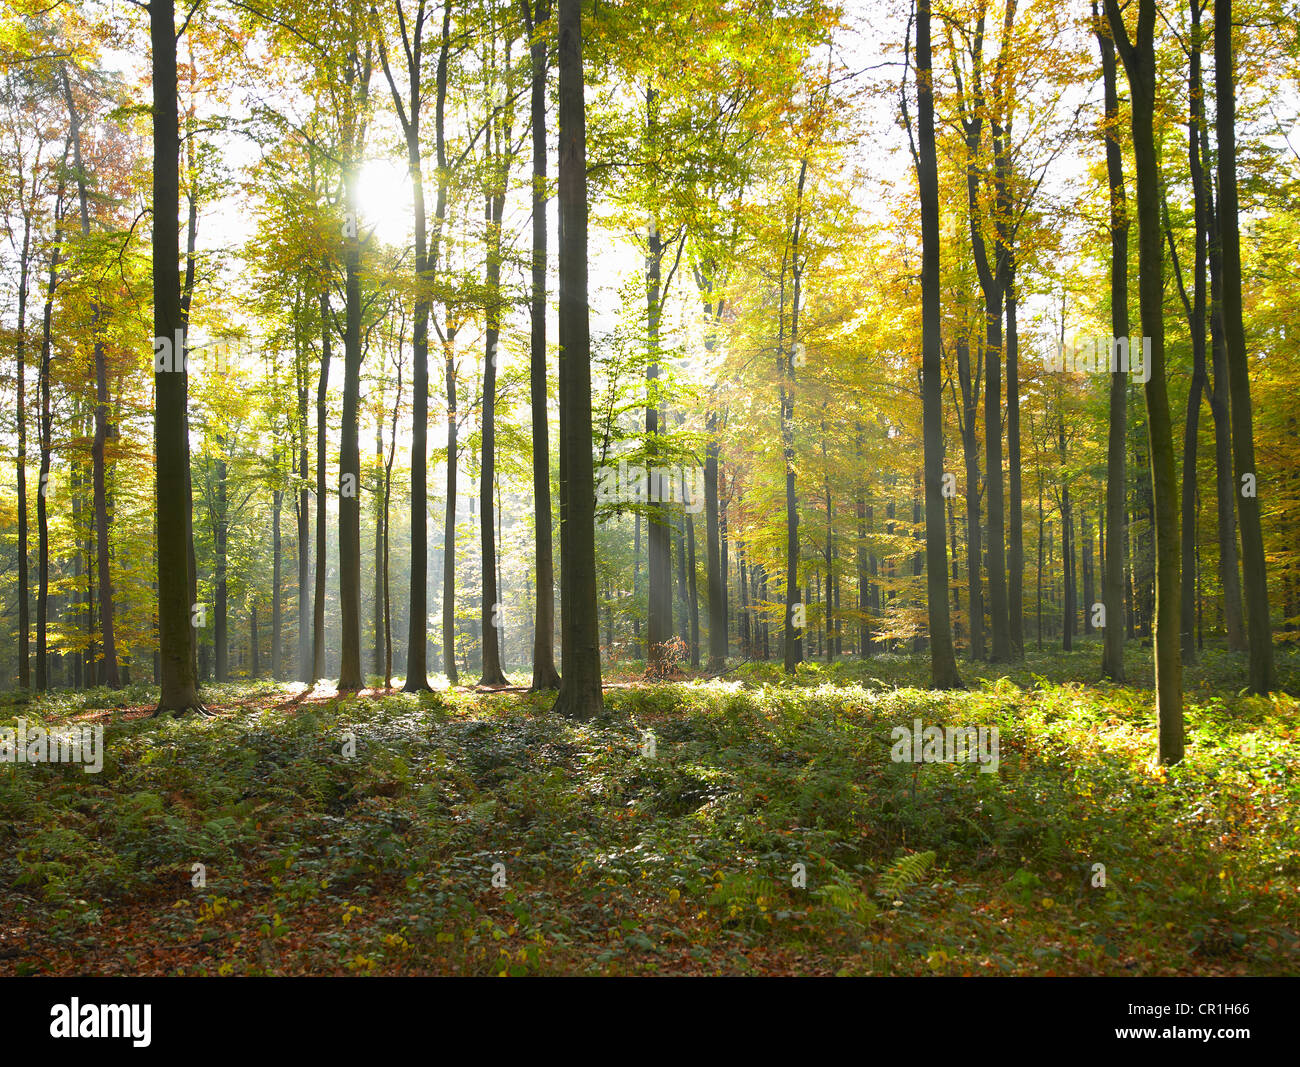 Sun shining through trees in forest - Stock Image